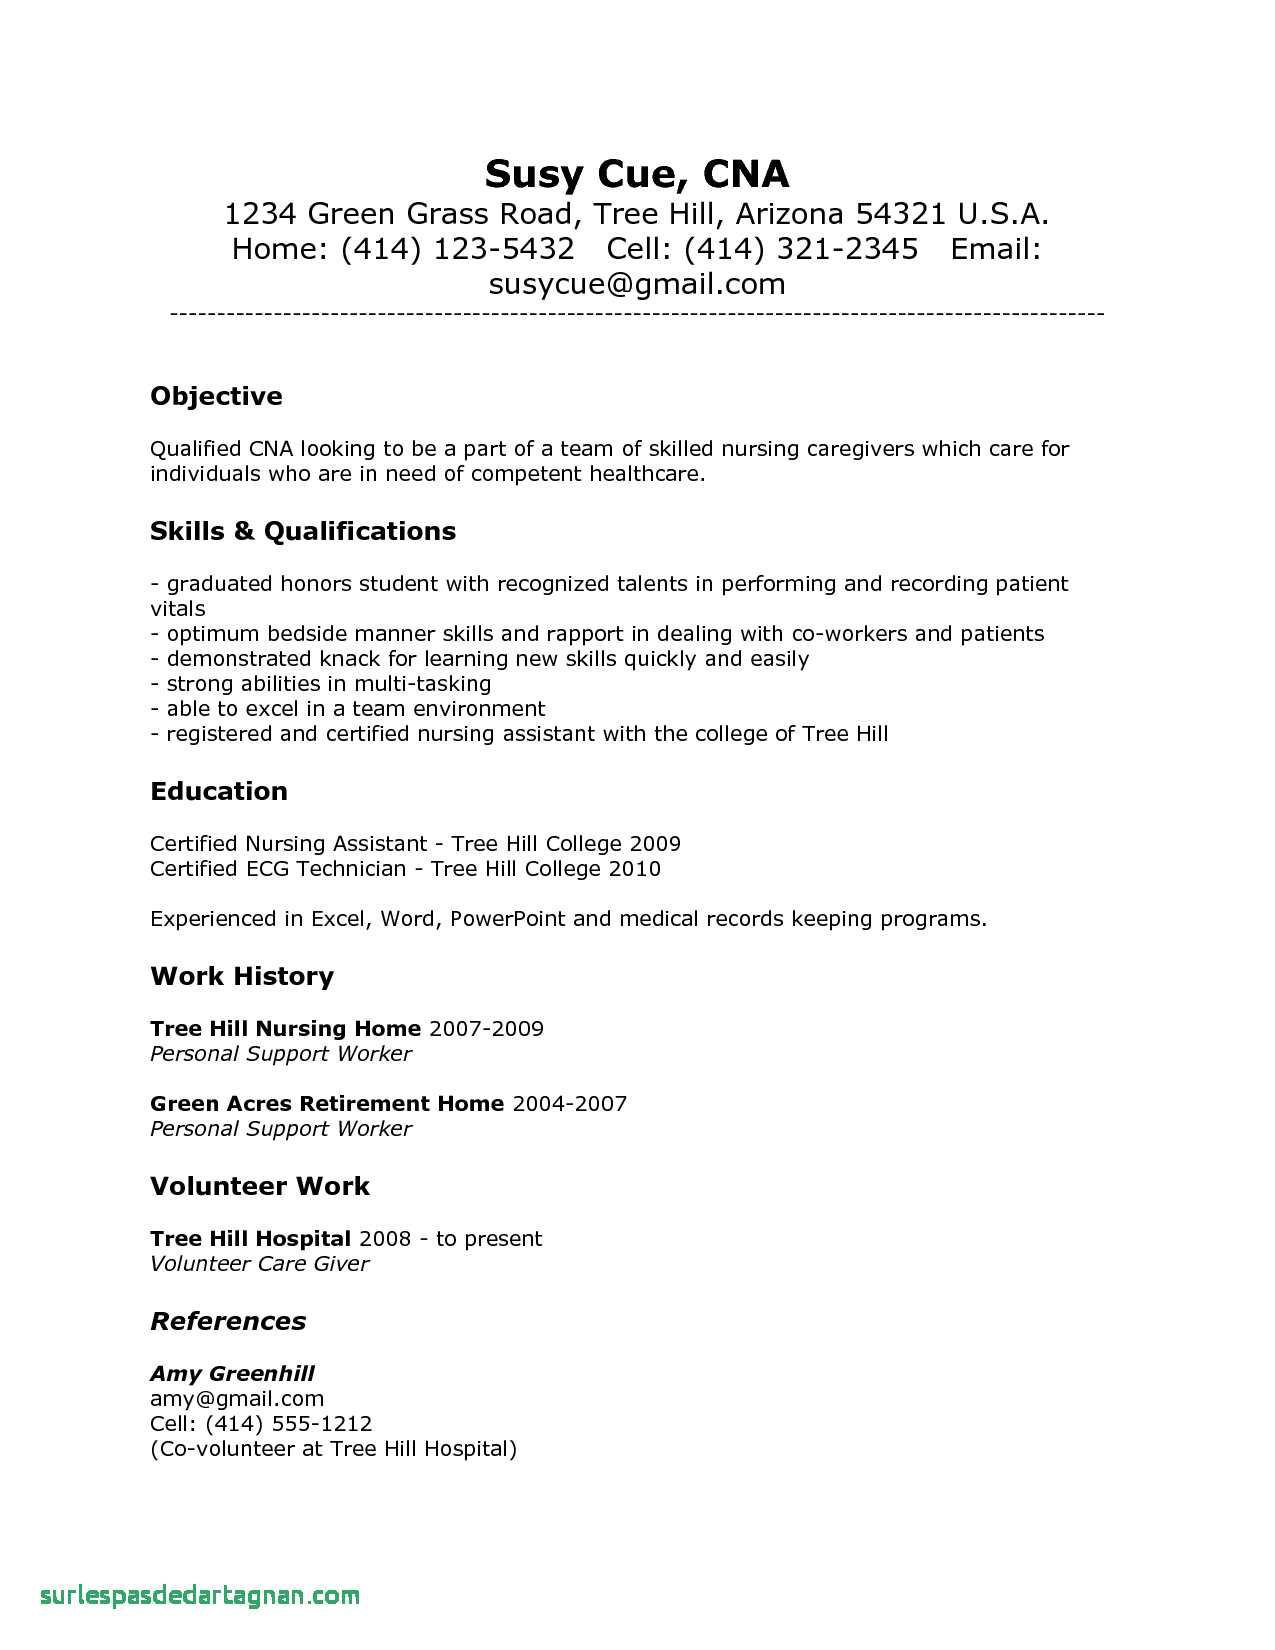 Sample Resume Rn 78 New Photos Of Sample Resume For Registered Nurse Without